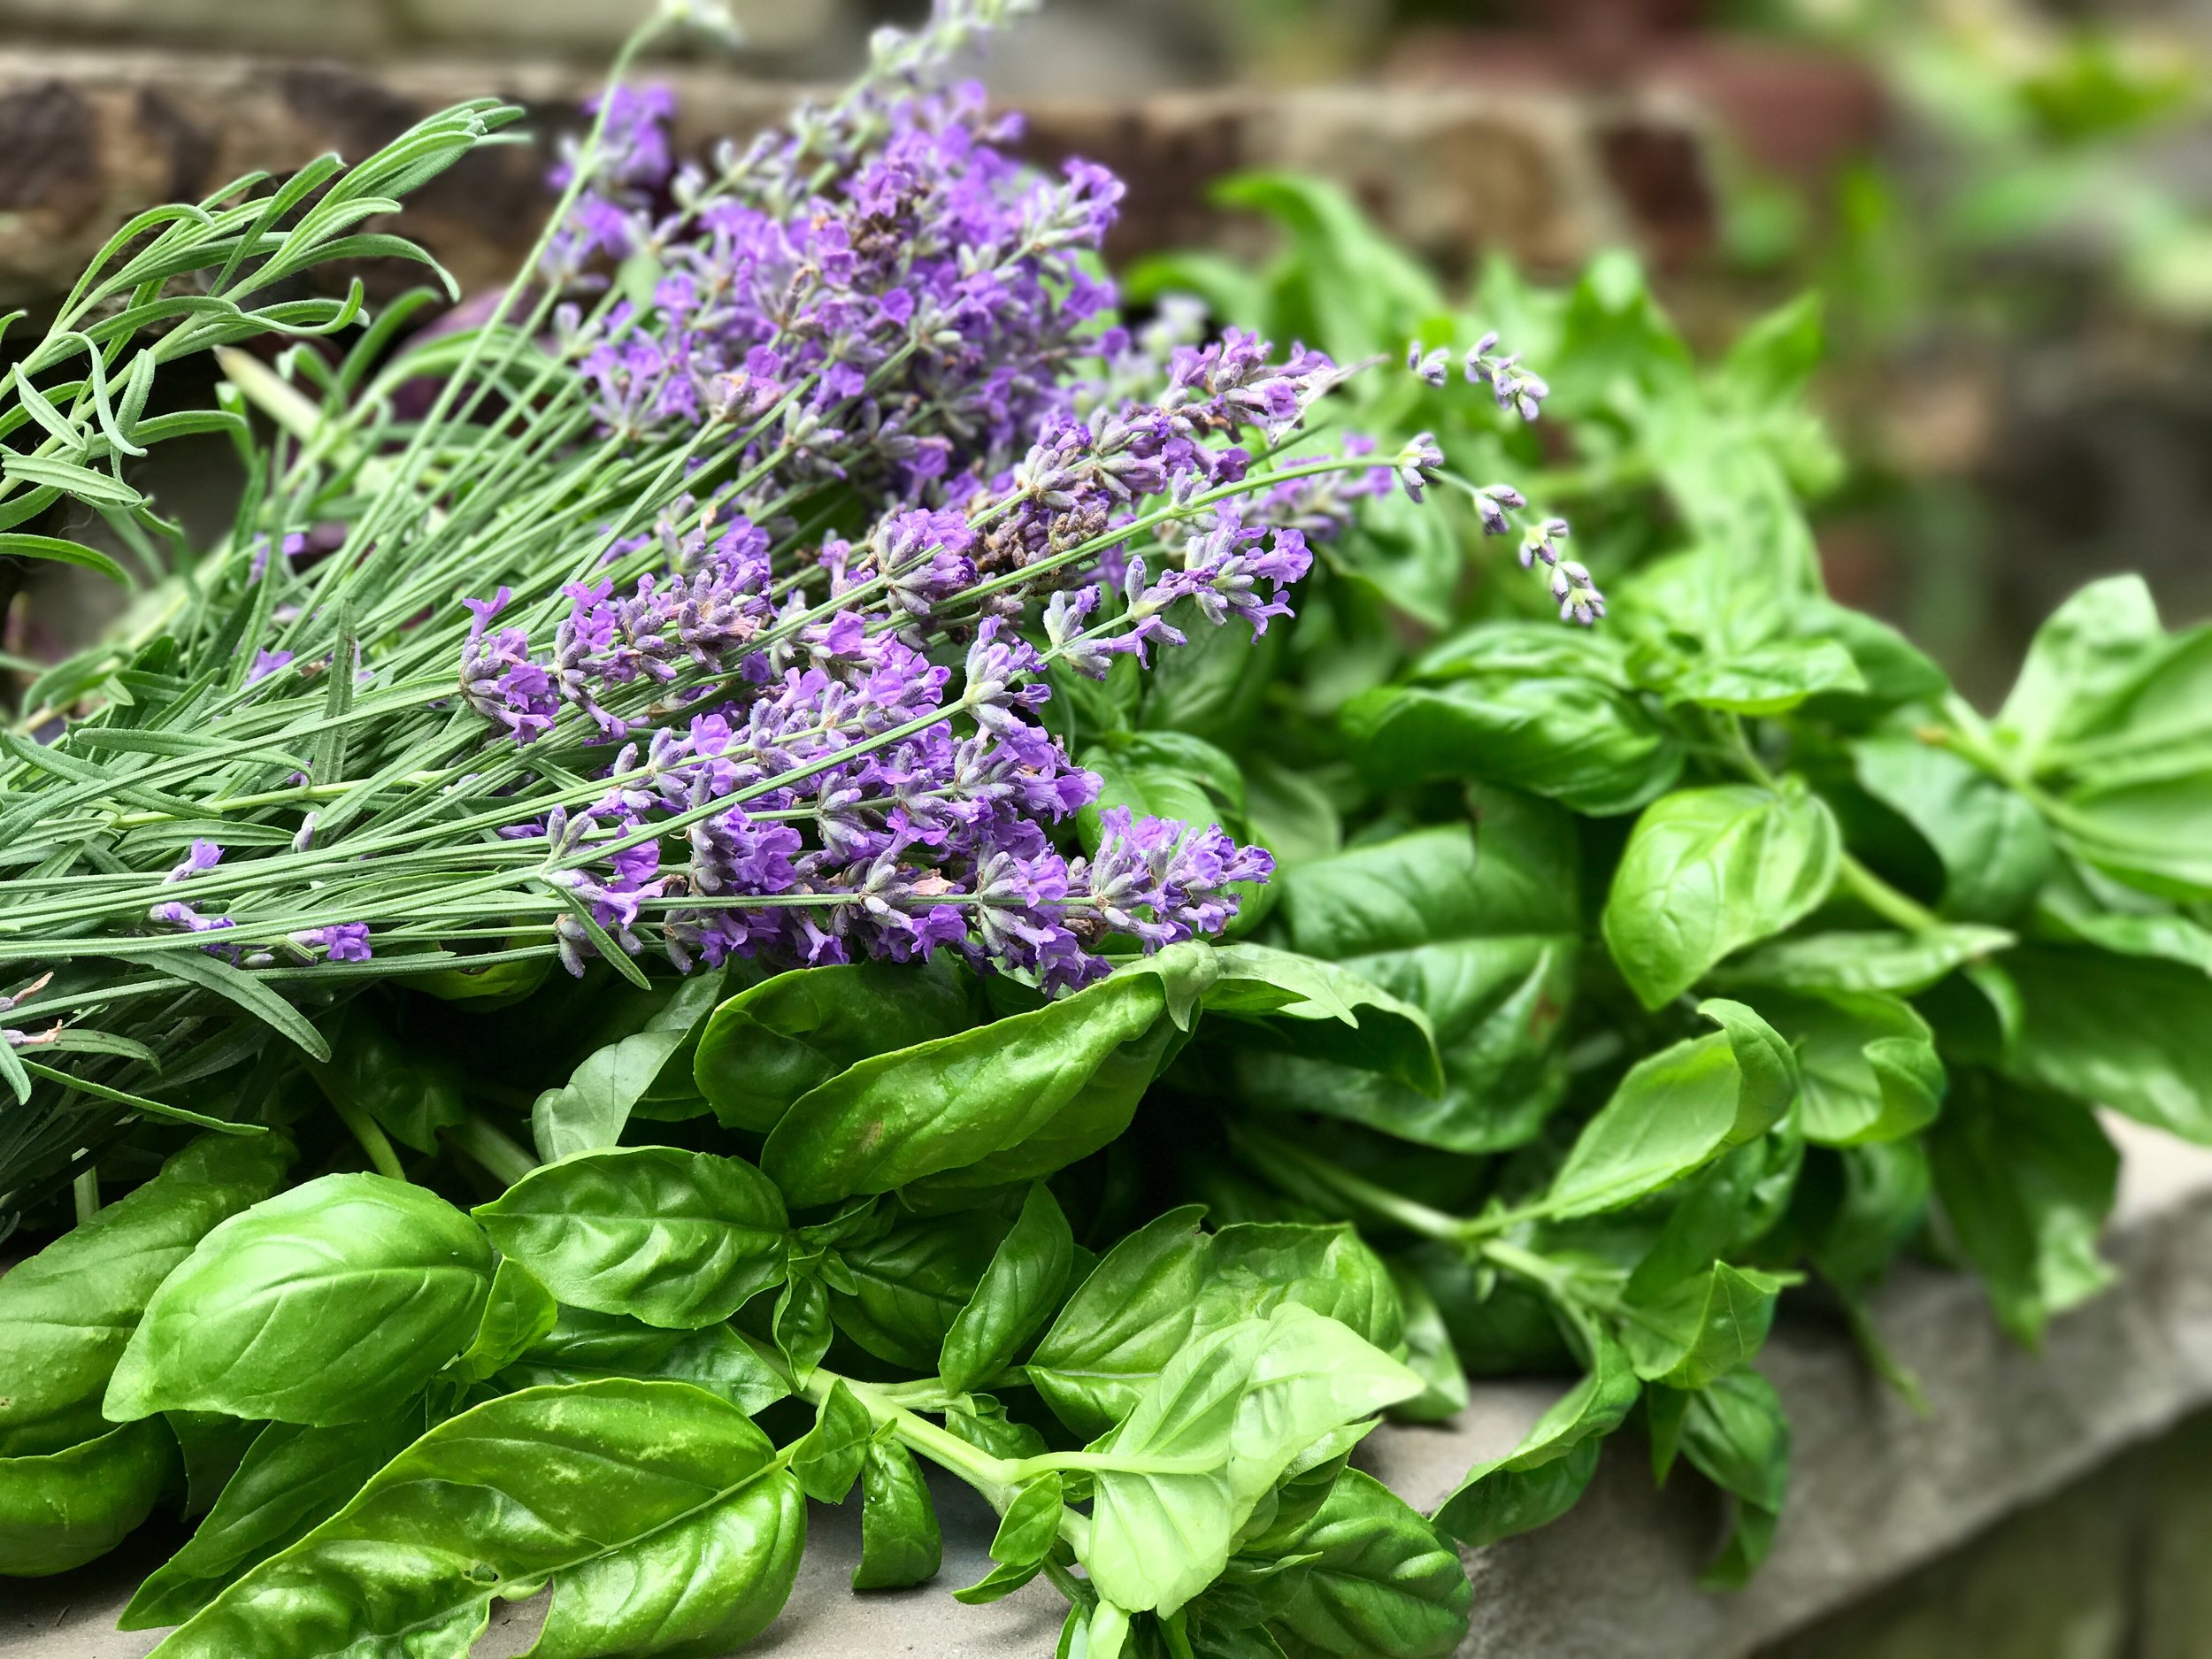 A few of my favorite things... lavender and basil from our garden last year.